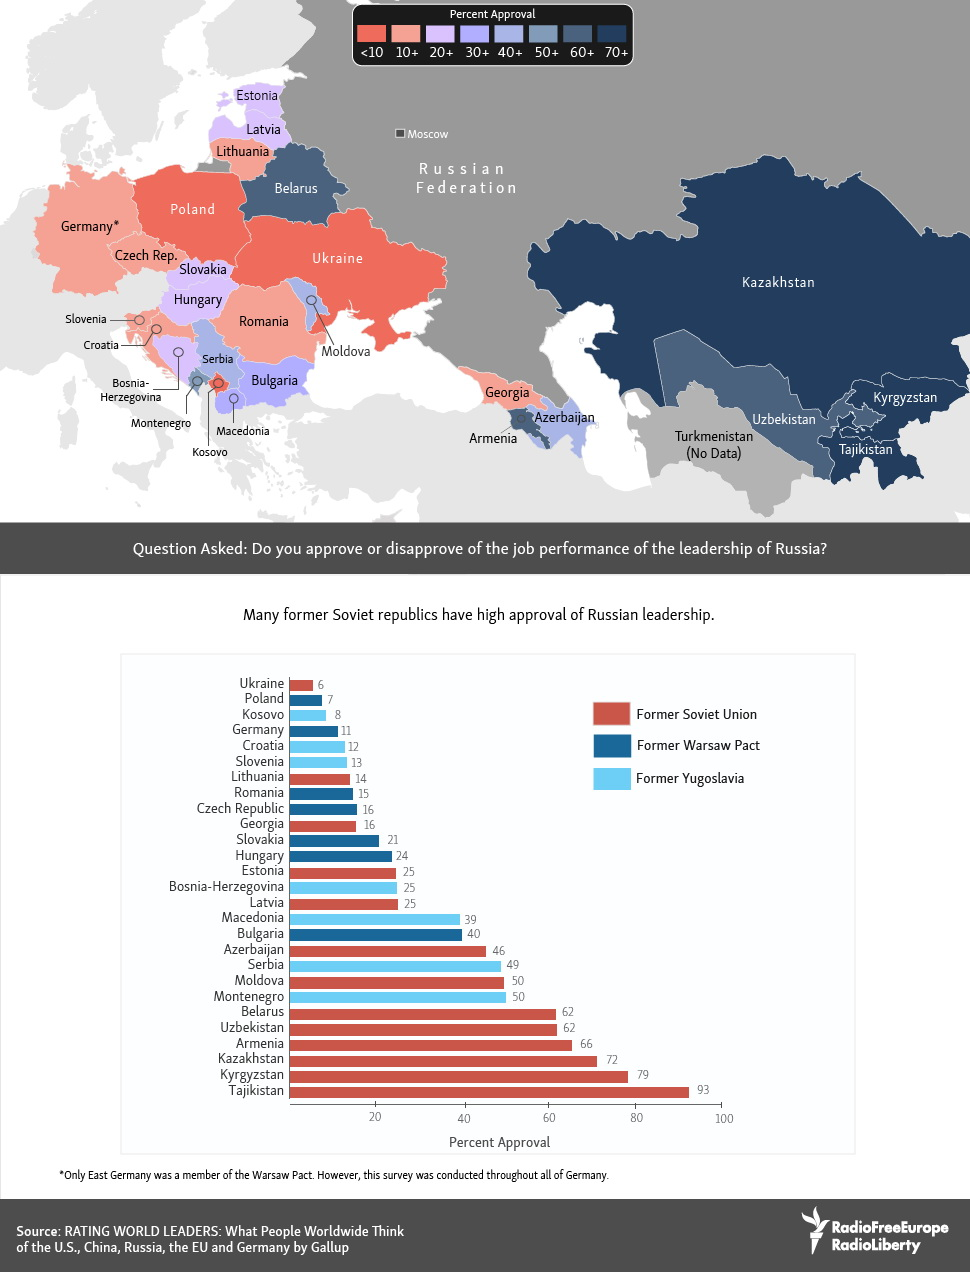 How do residents of former Eastern Block countries view Russian leadership today?